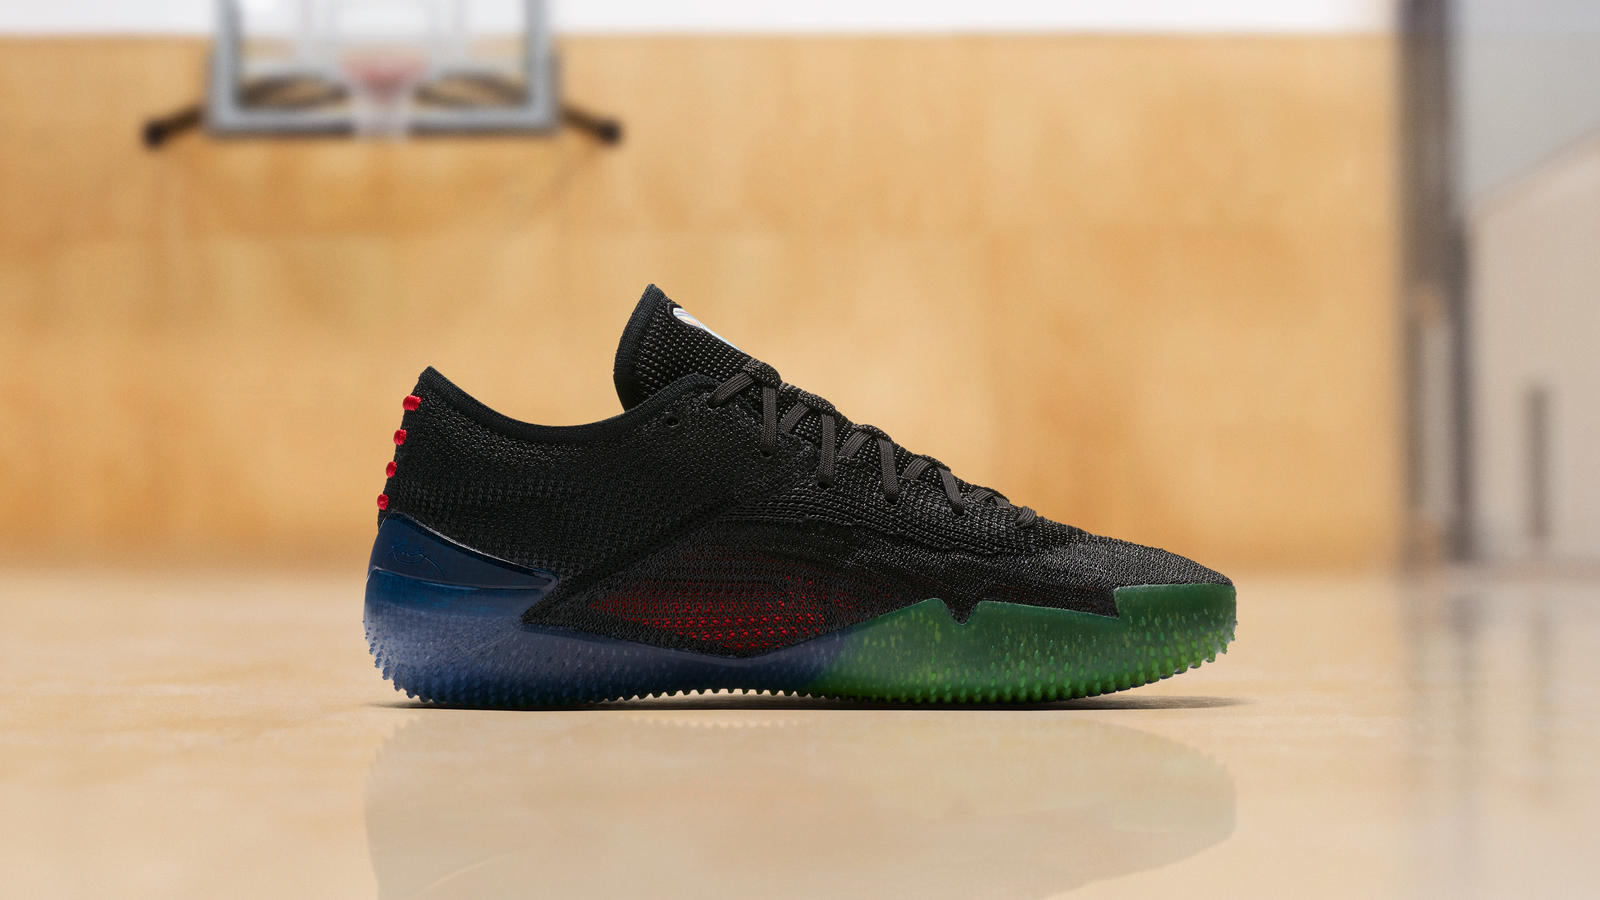 180321 footwear kobe 0015 med hd 1600